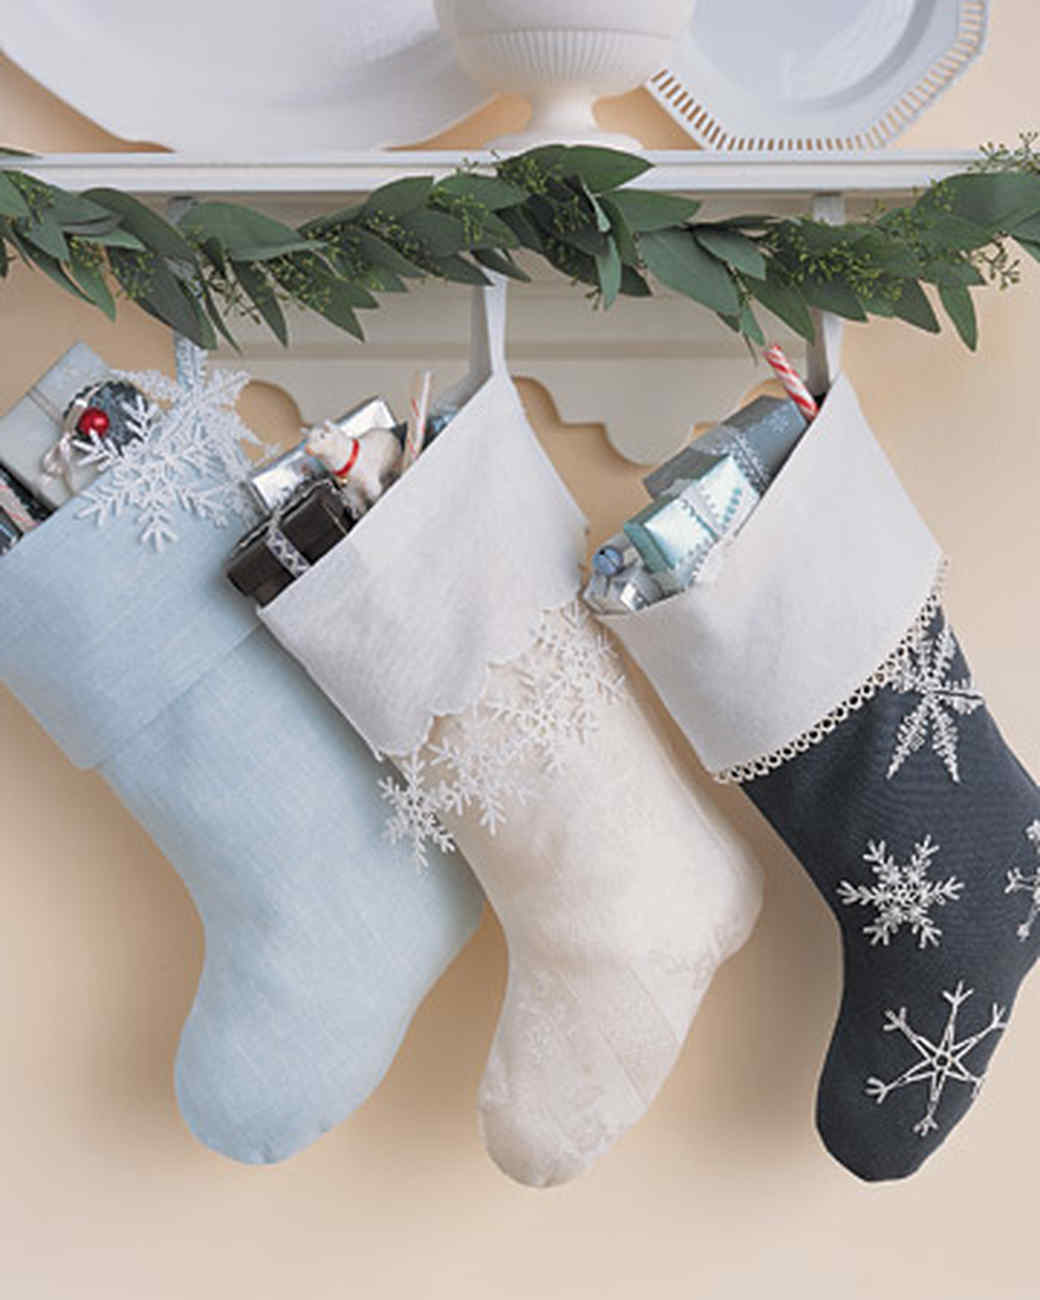 ml212_1202_frosty_stocking.jpg